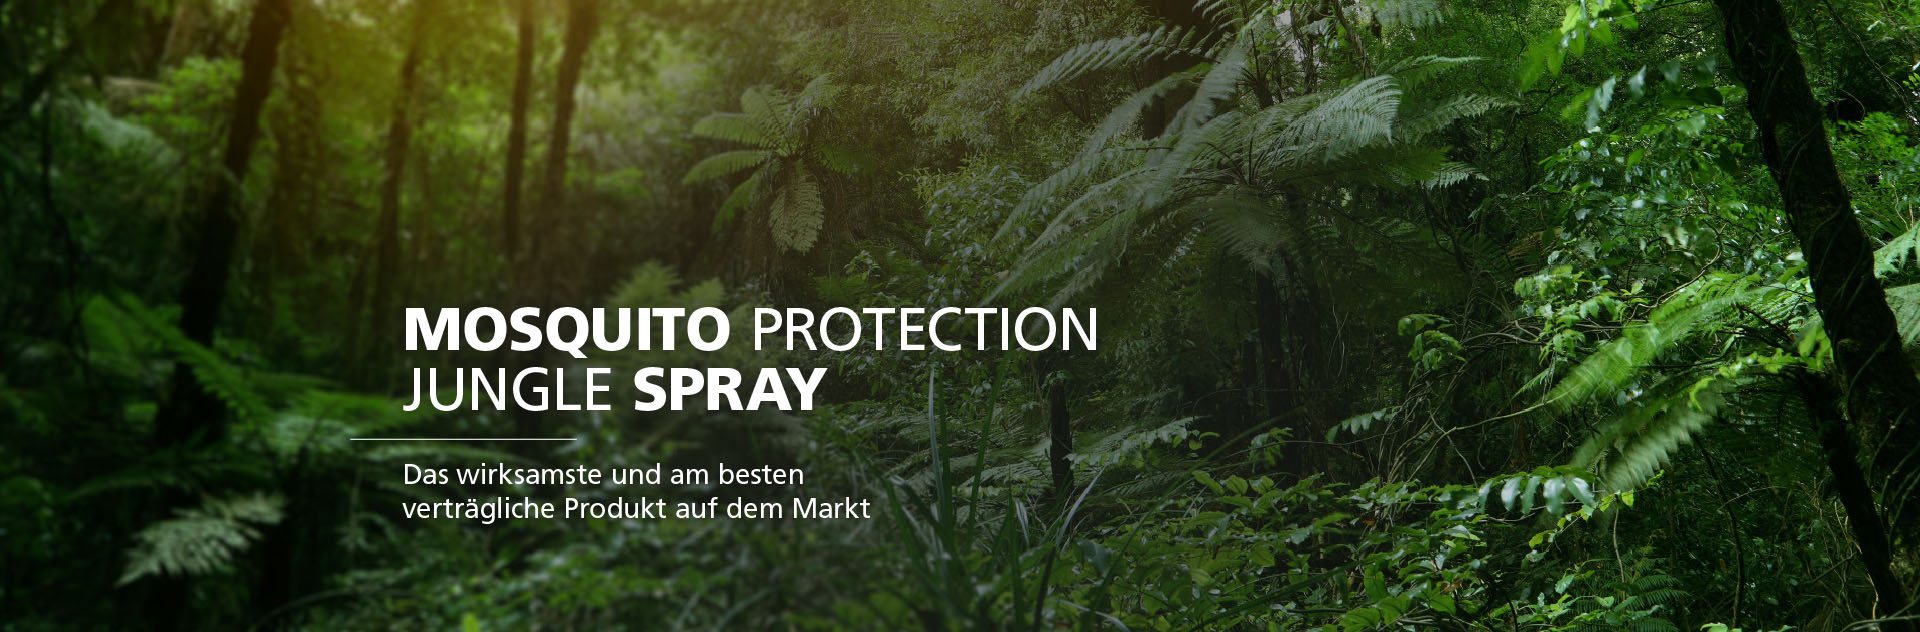 Mosquito Protection Jungle Spray